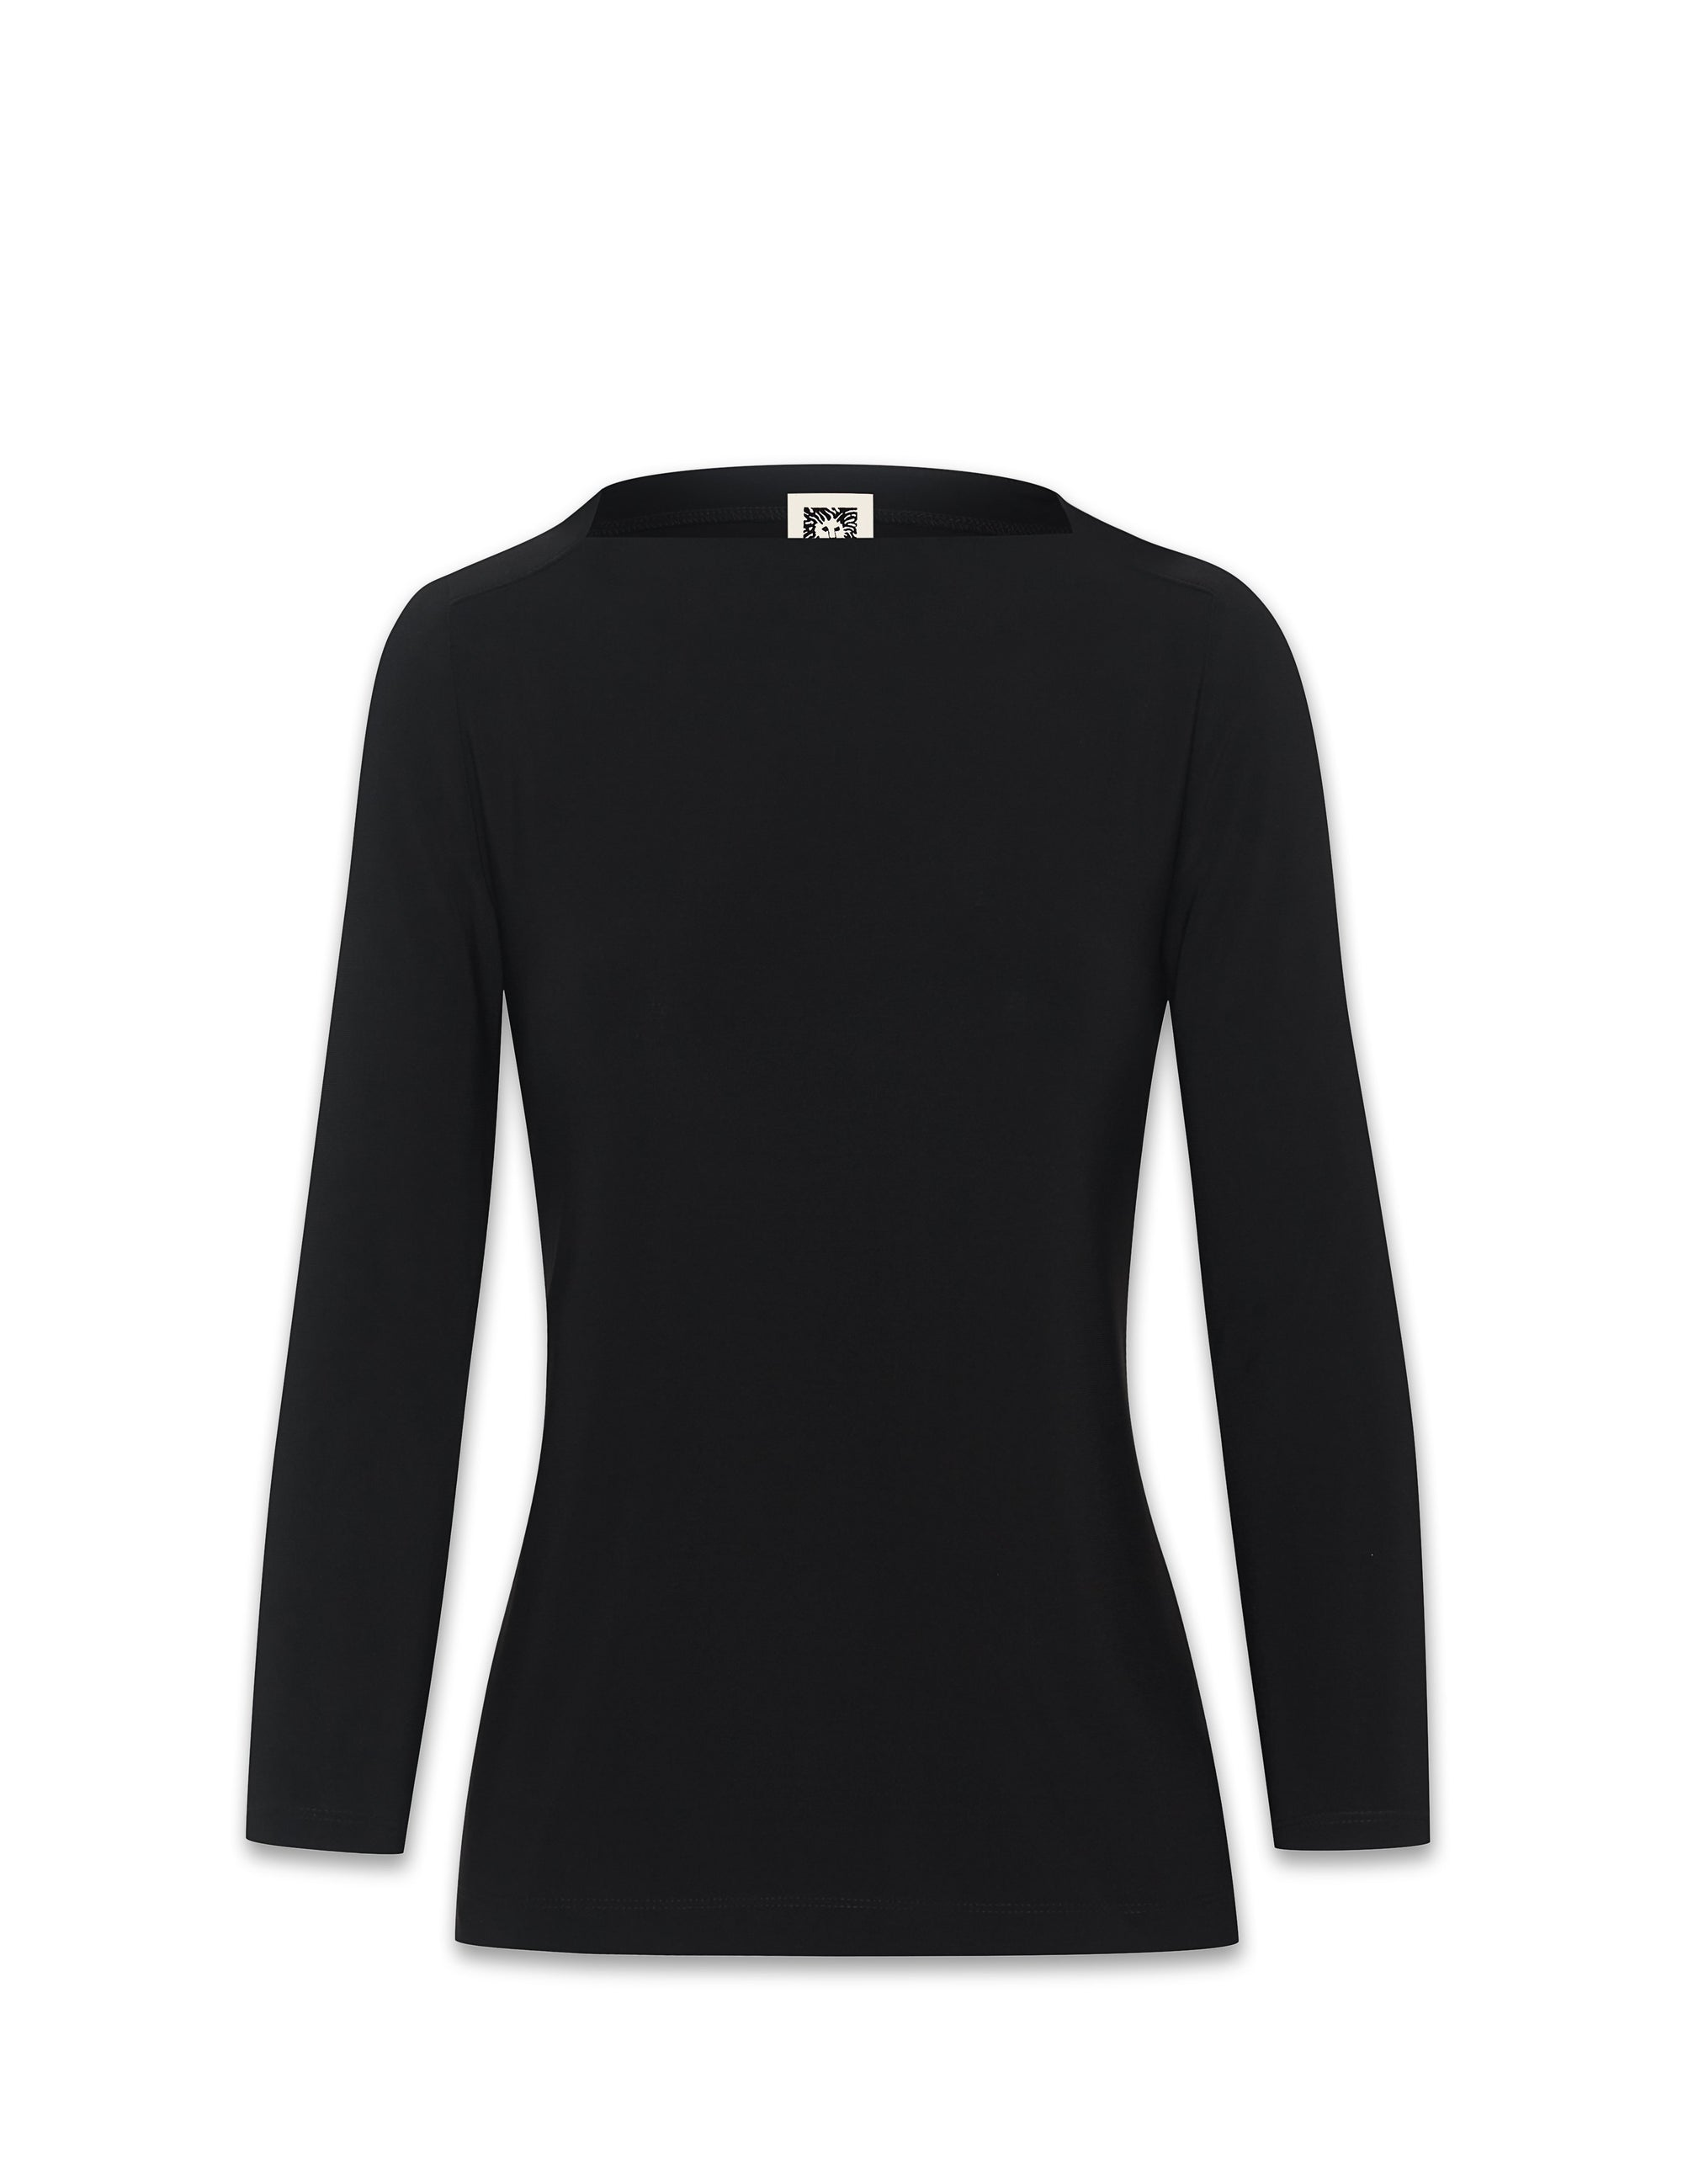 Anne Klein Black Envelope Sailor Top